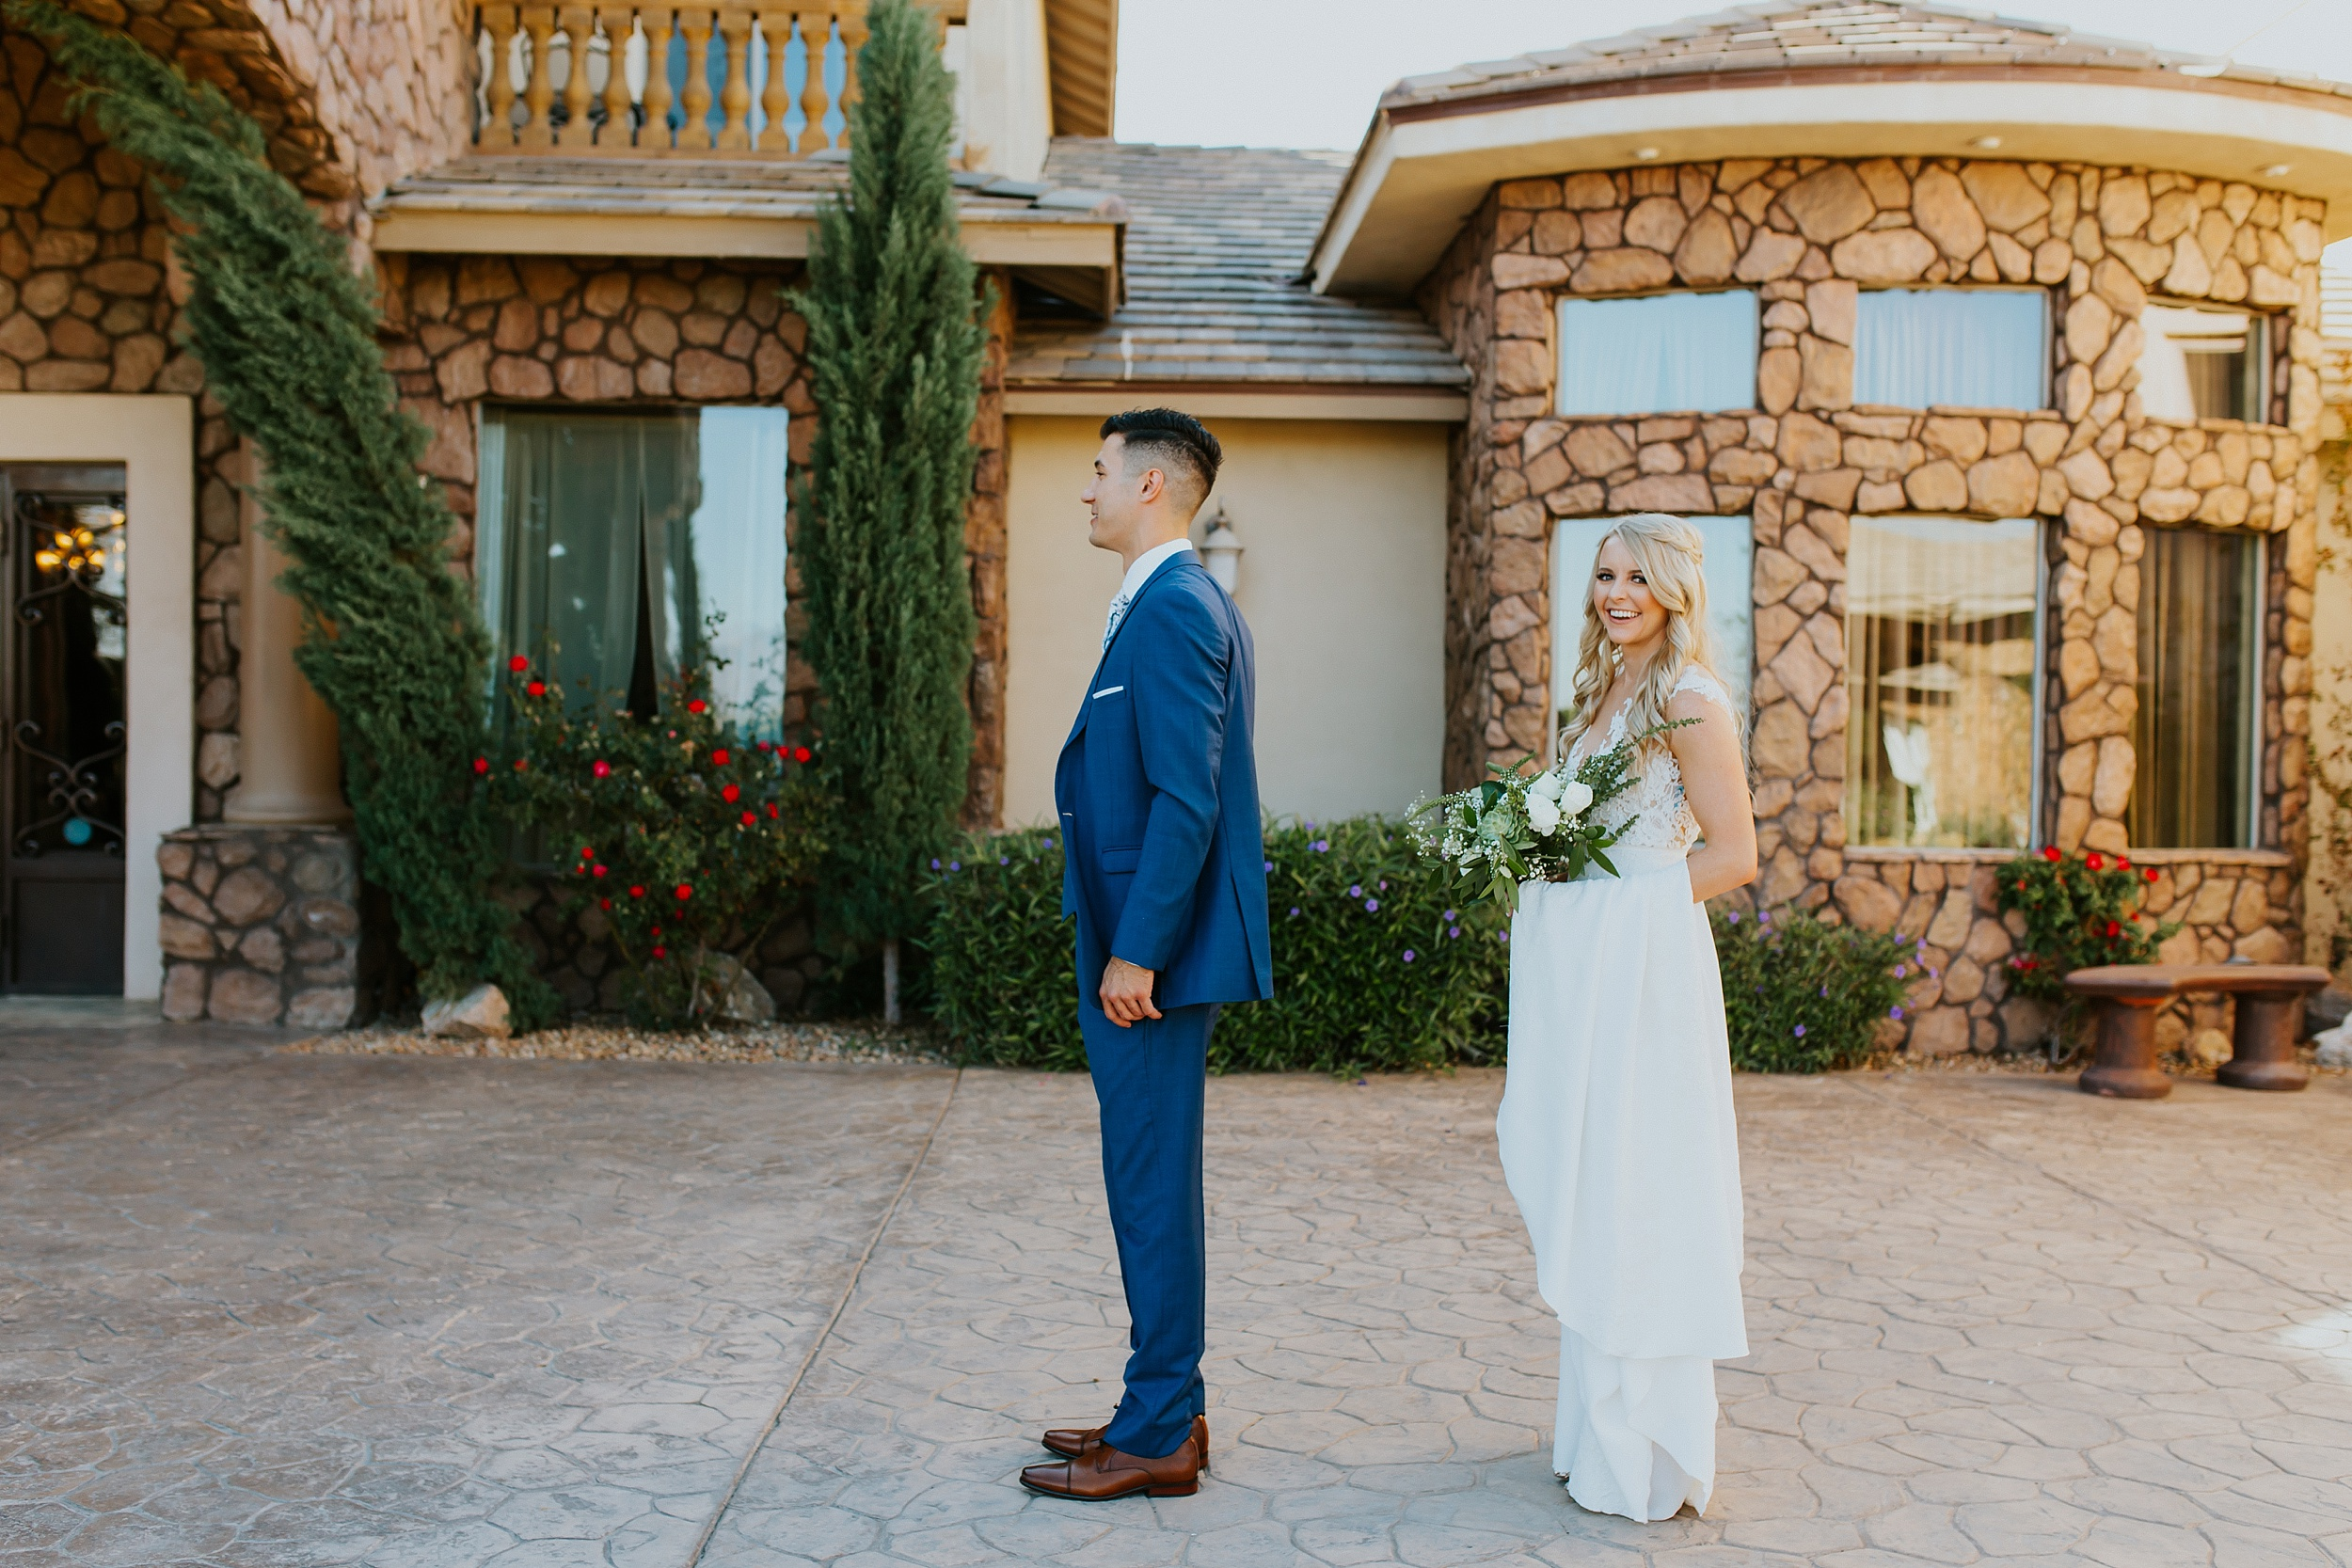 Meg+Bubba_Wedding_FirstLook_Arizona-25.jpg